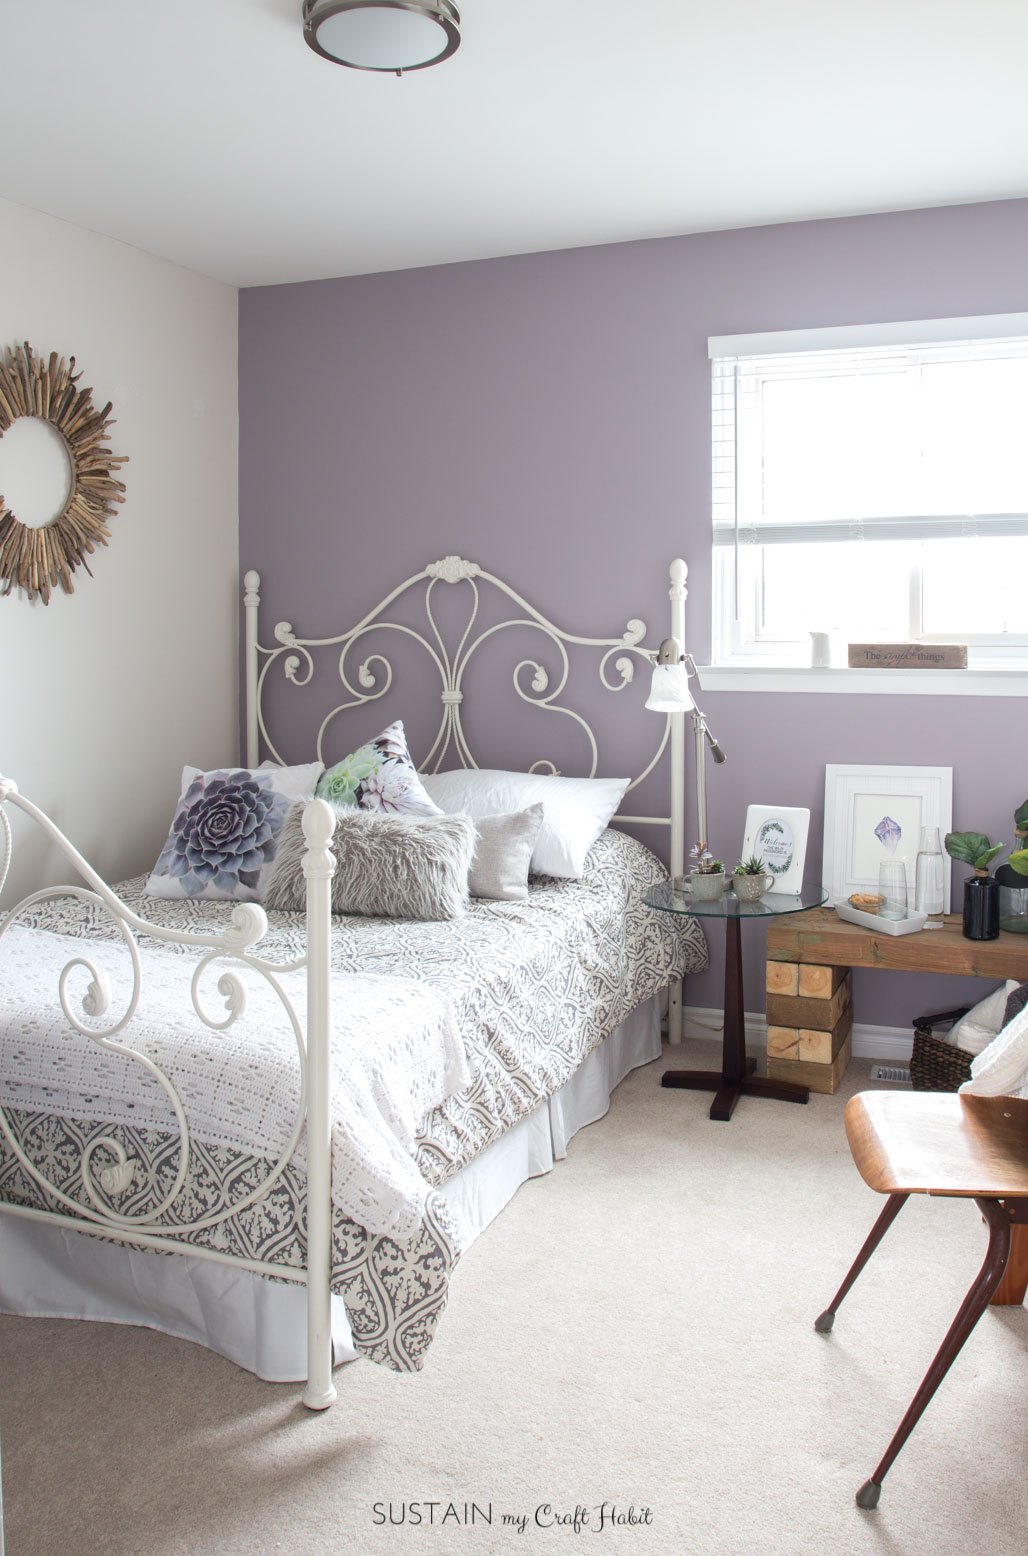 Mauve-lous Guest Bedroom Ideas: A Simple Spare Room